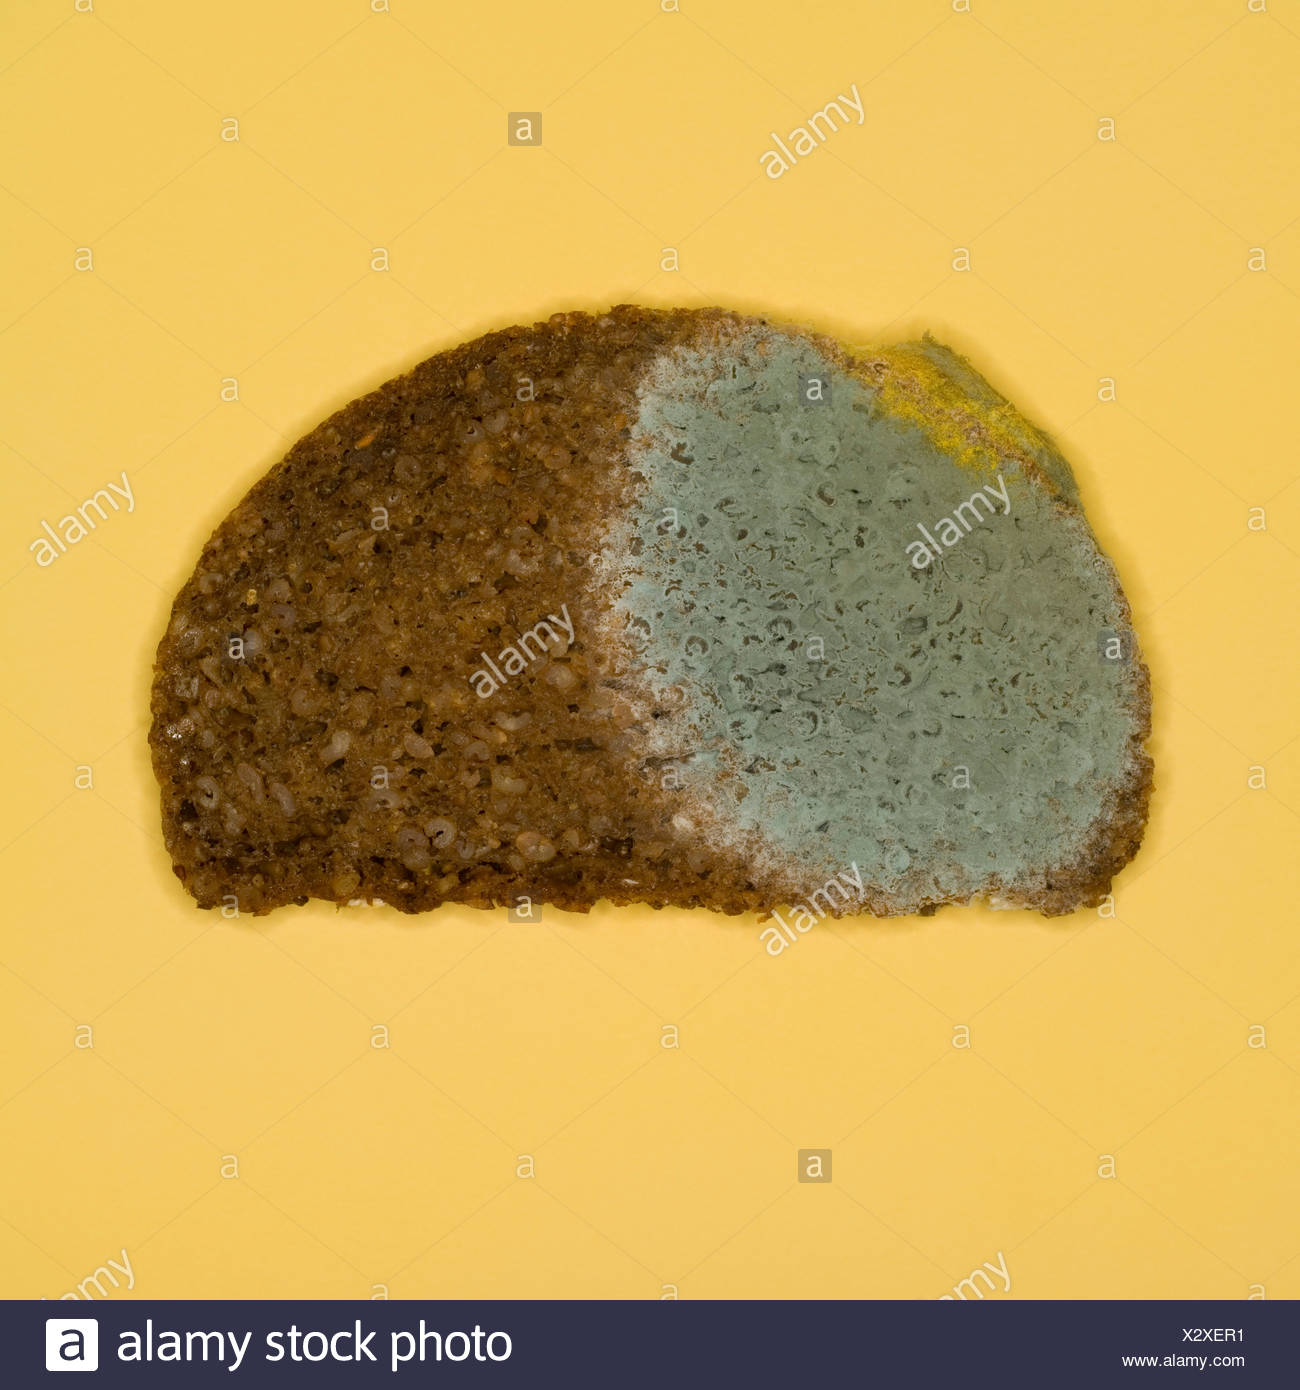 Moulded bread, elevated view - Stock Image